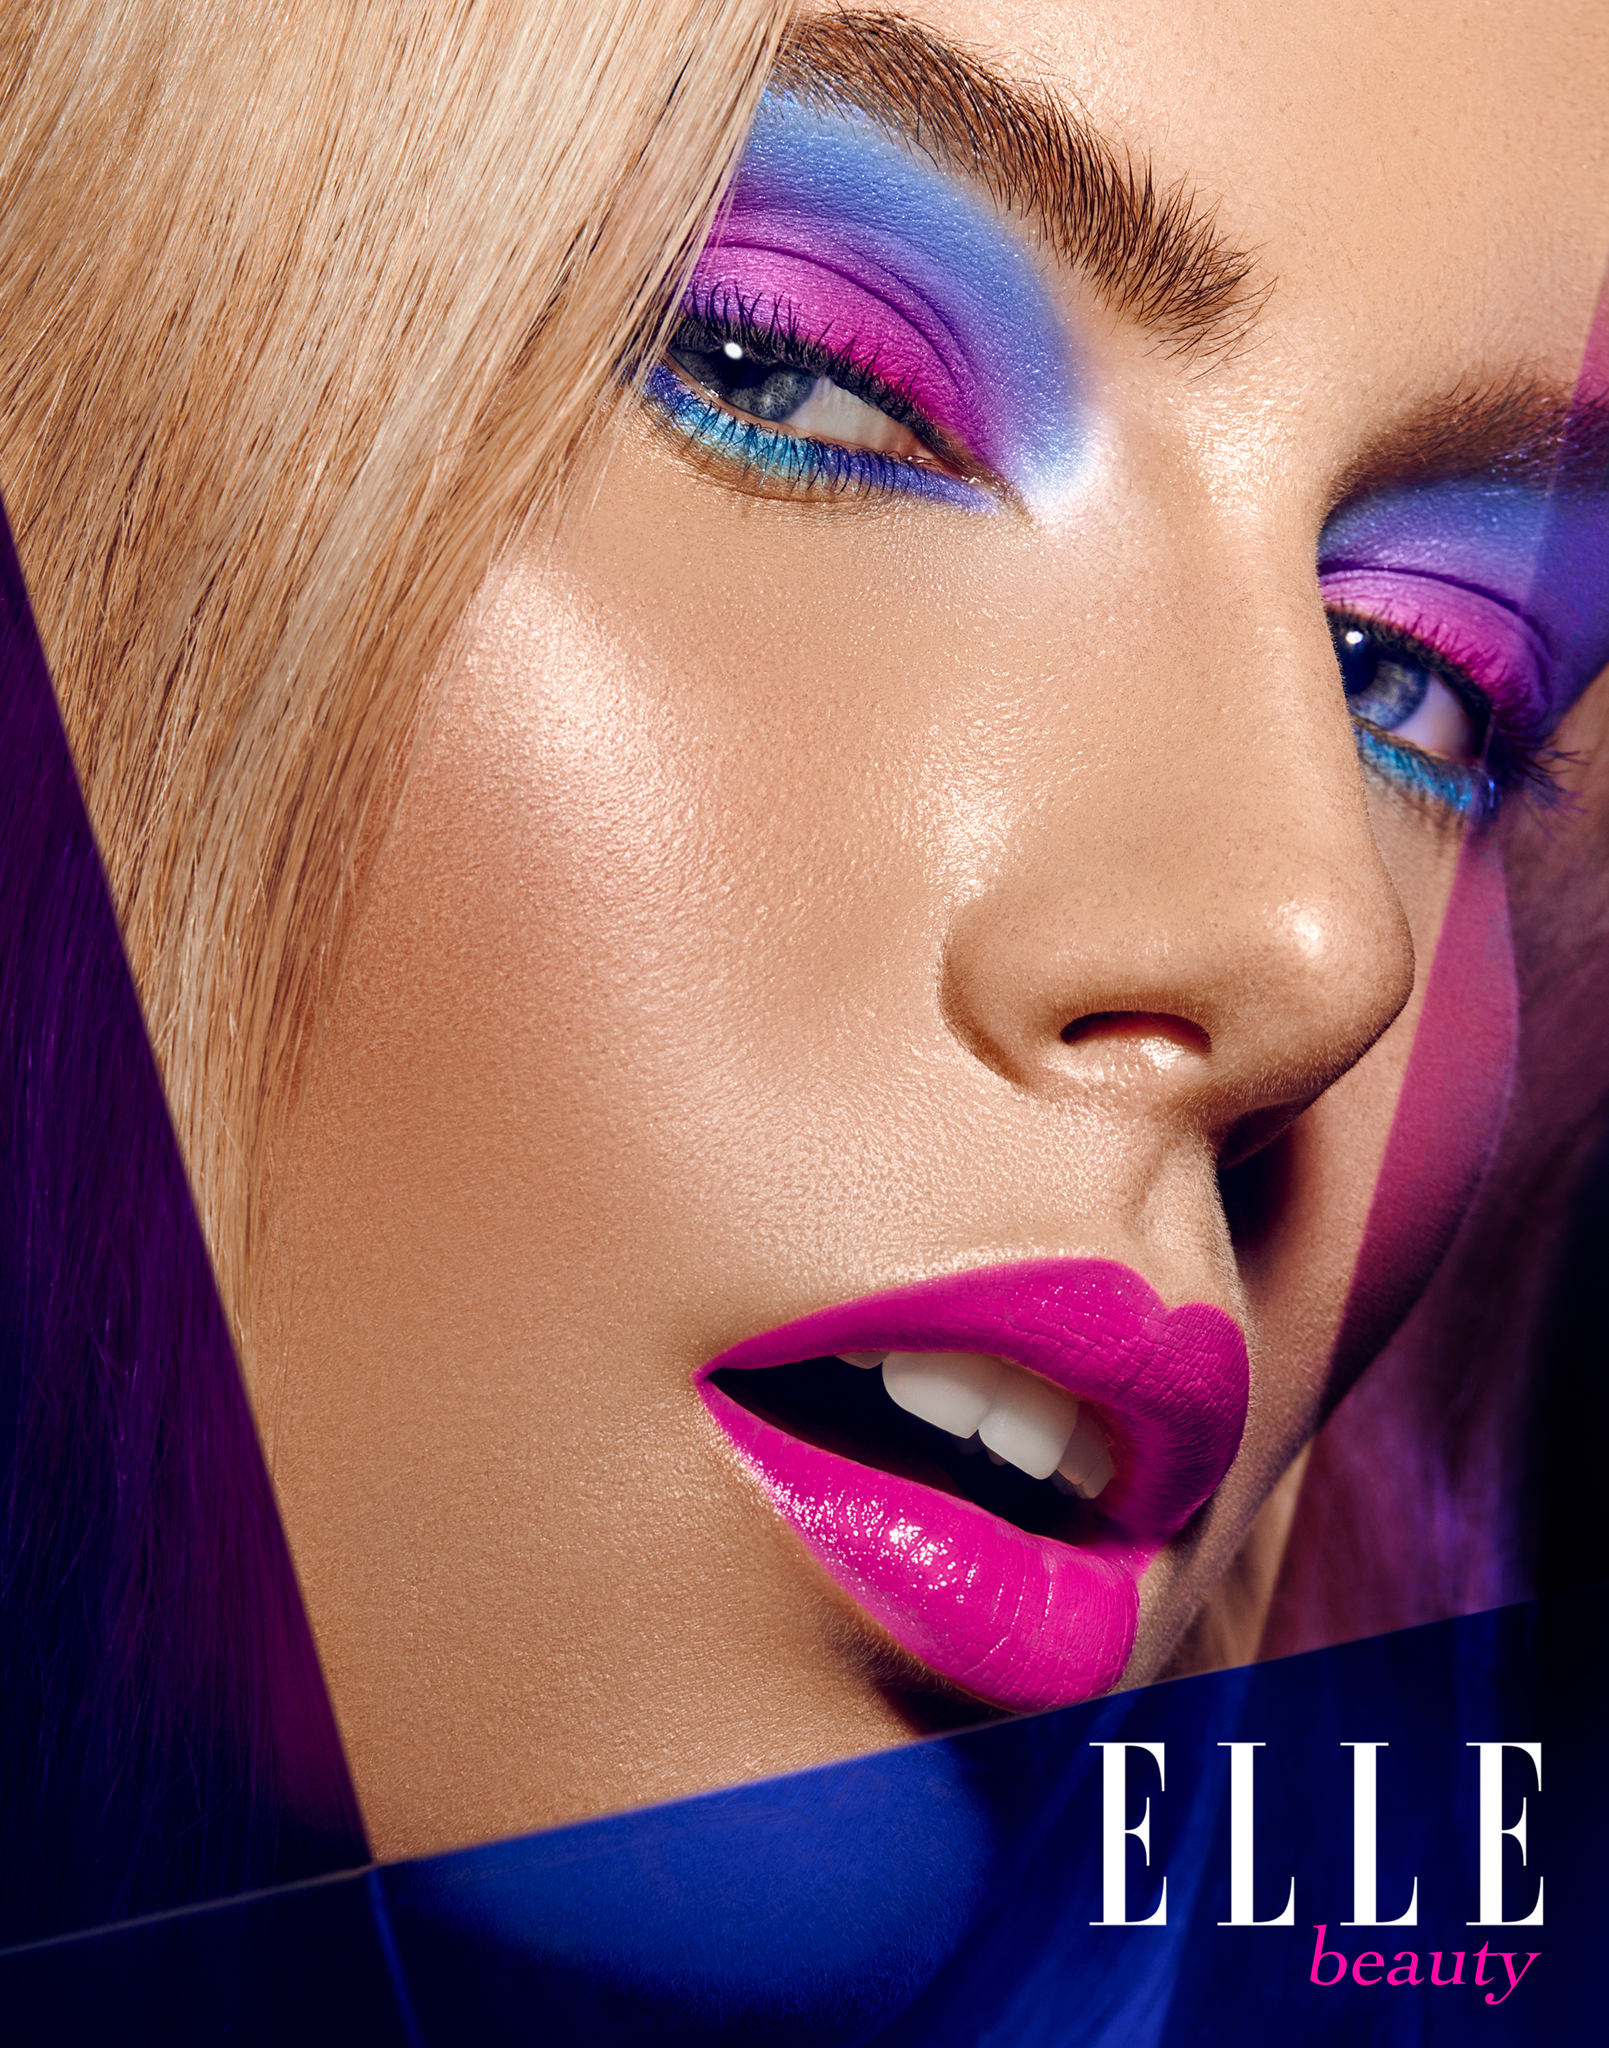 Elle Magazine, Romania's October 2018 Edition featuring OYG BIV by Antonio Martez